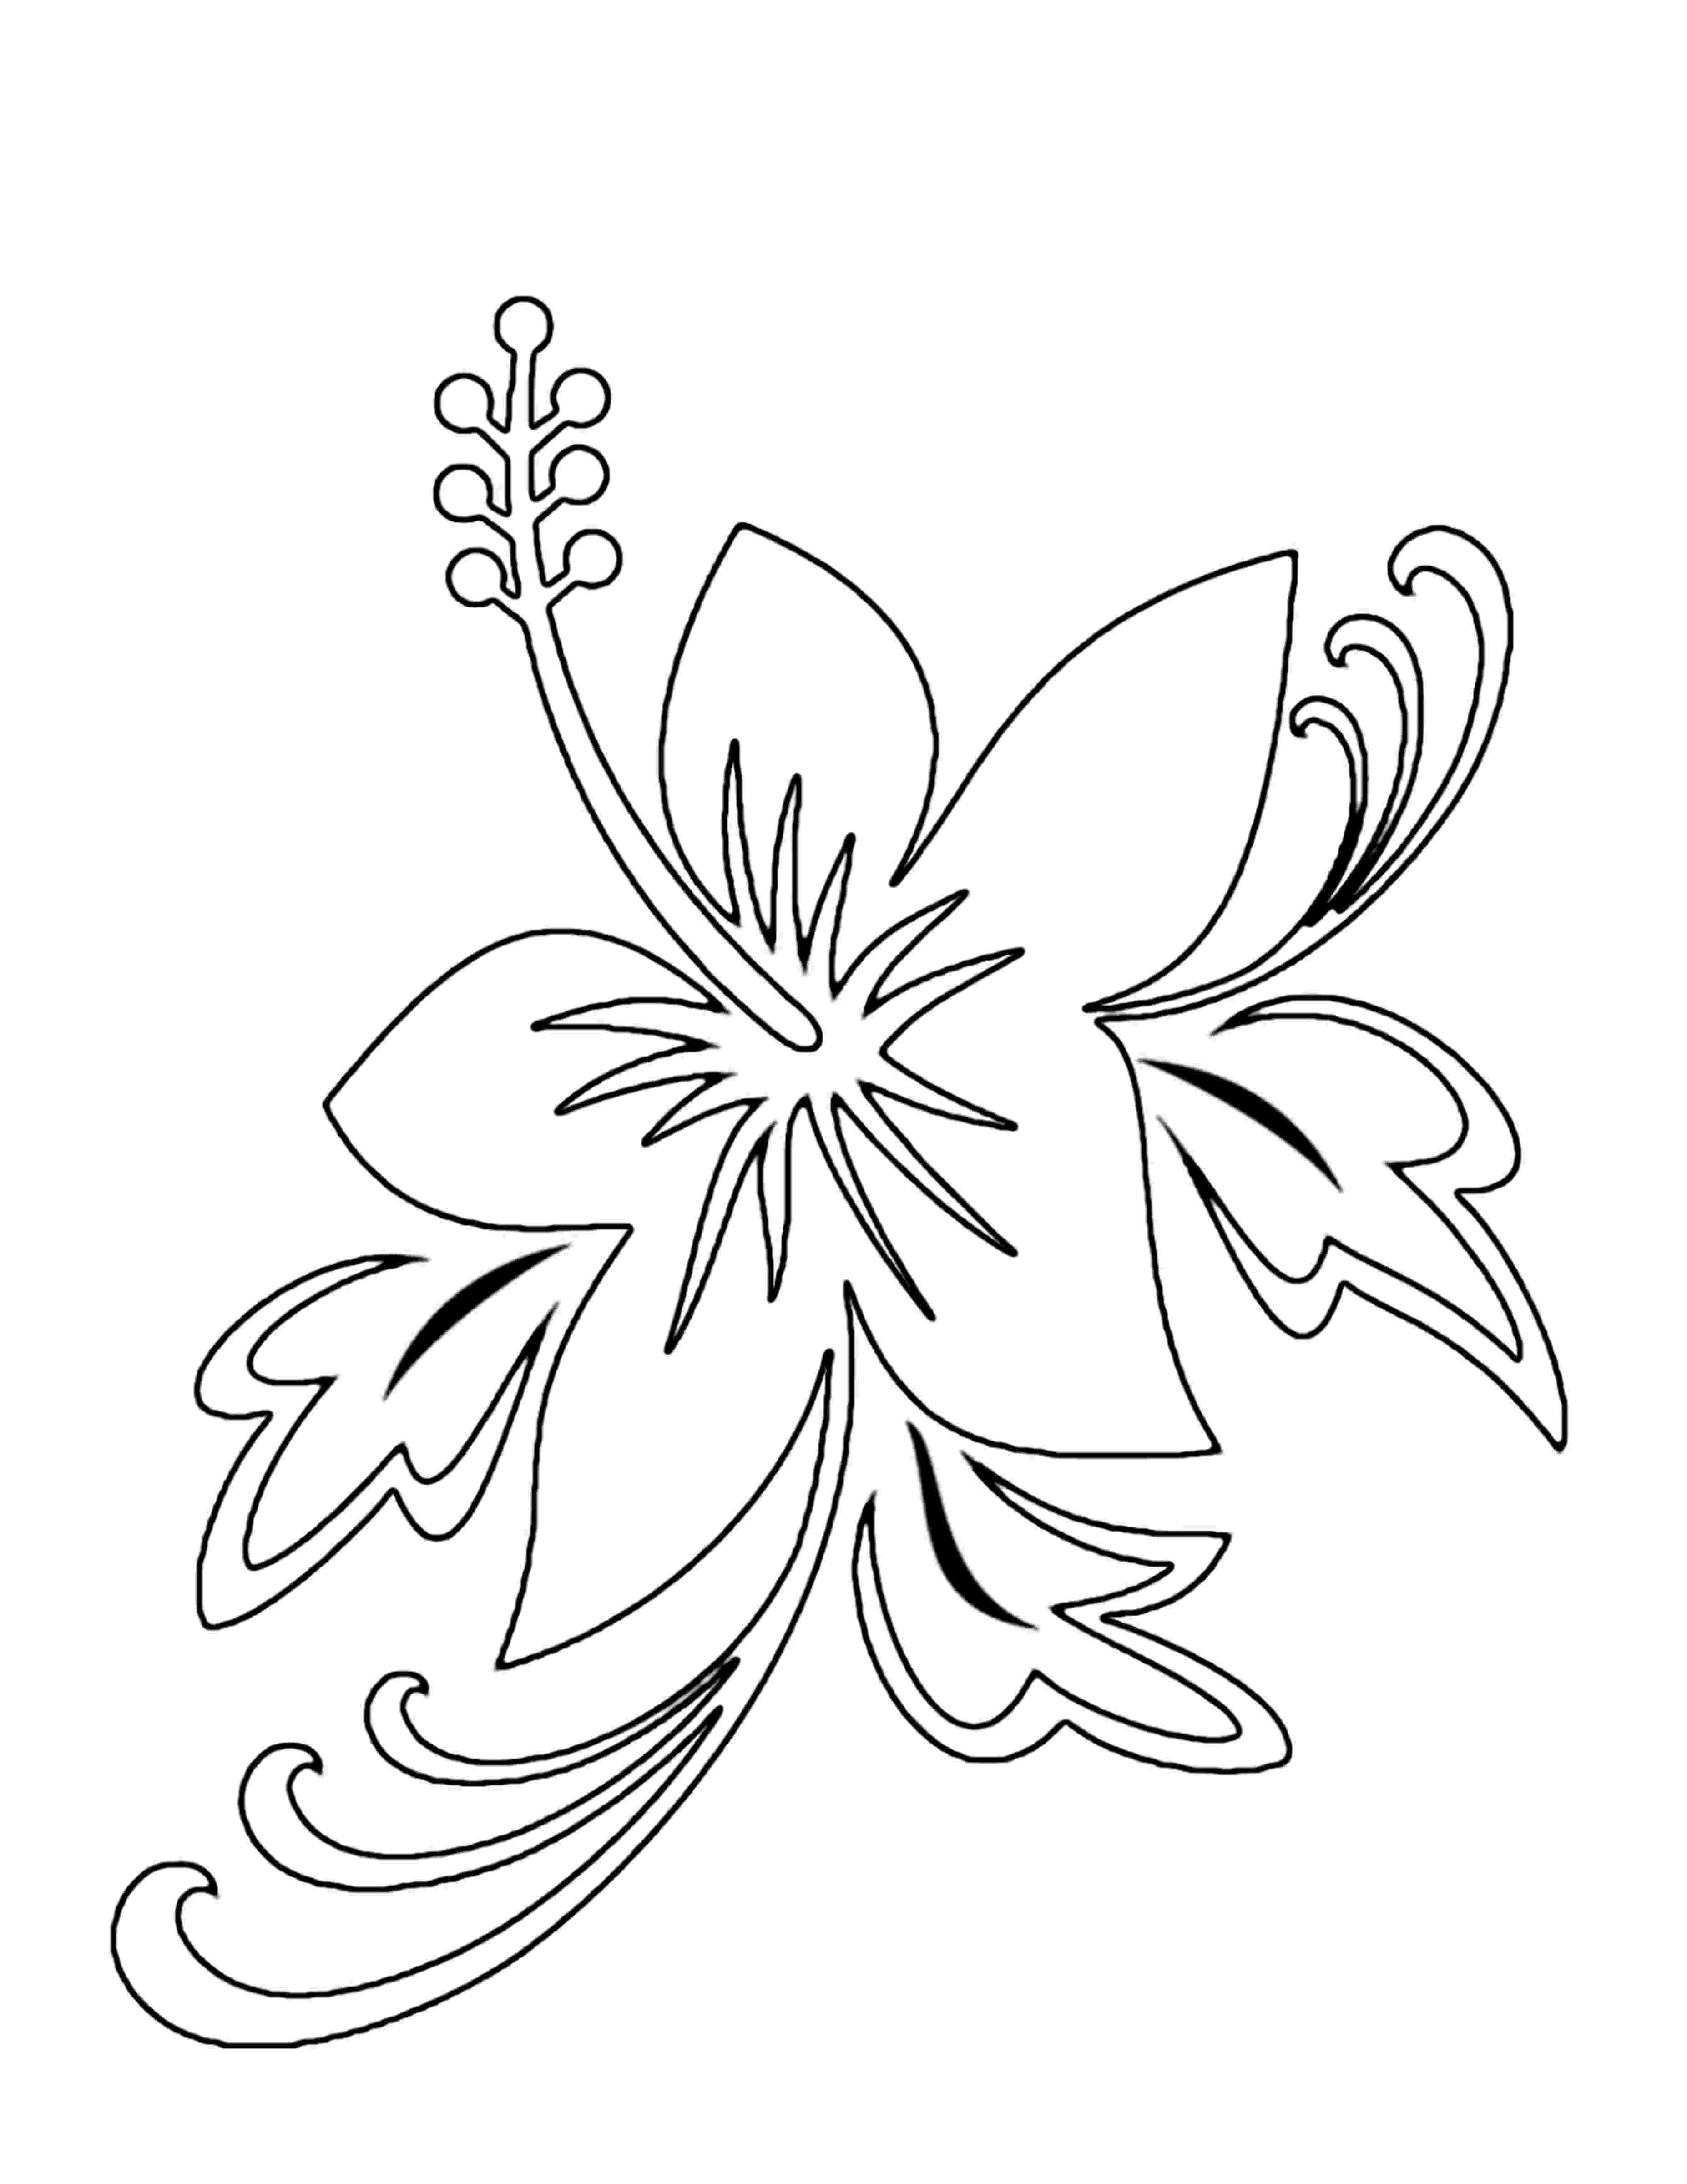 free coloring pictures of flowers free printable flower coloring pages for kids best coloring free pictures of flowers